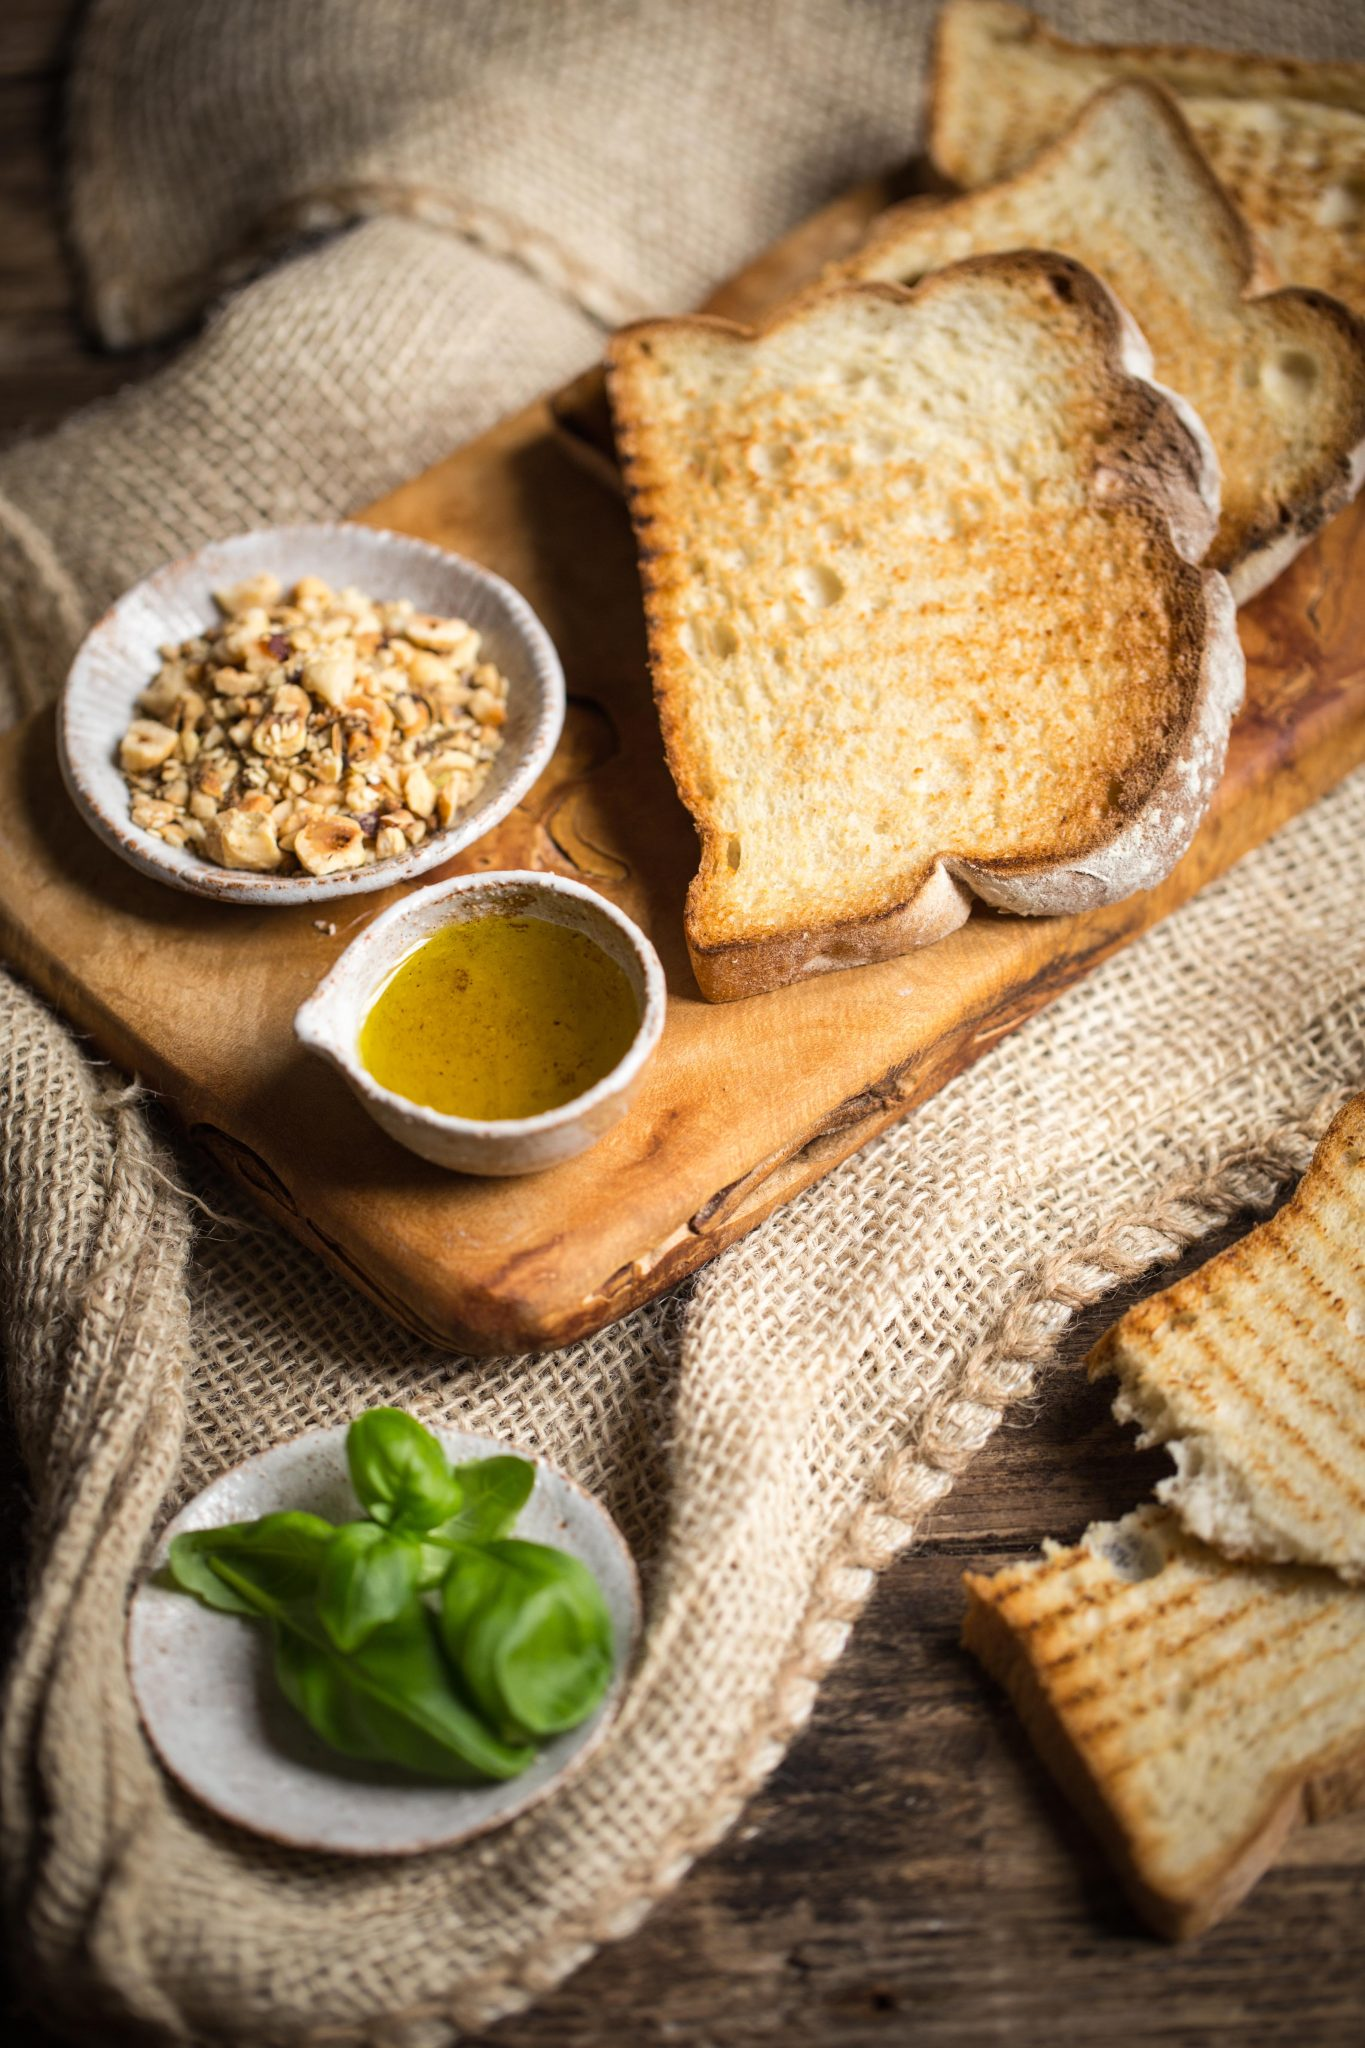 Grilled bread served with olive oil and dukkah